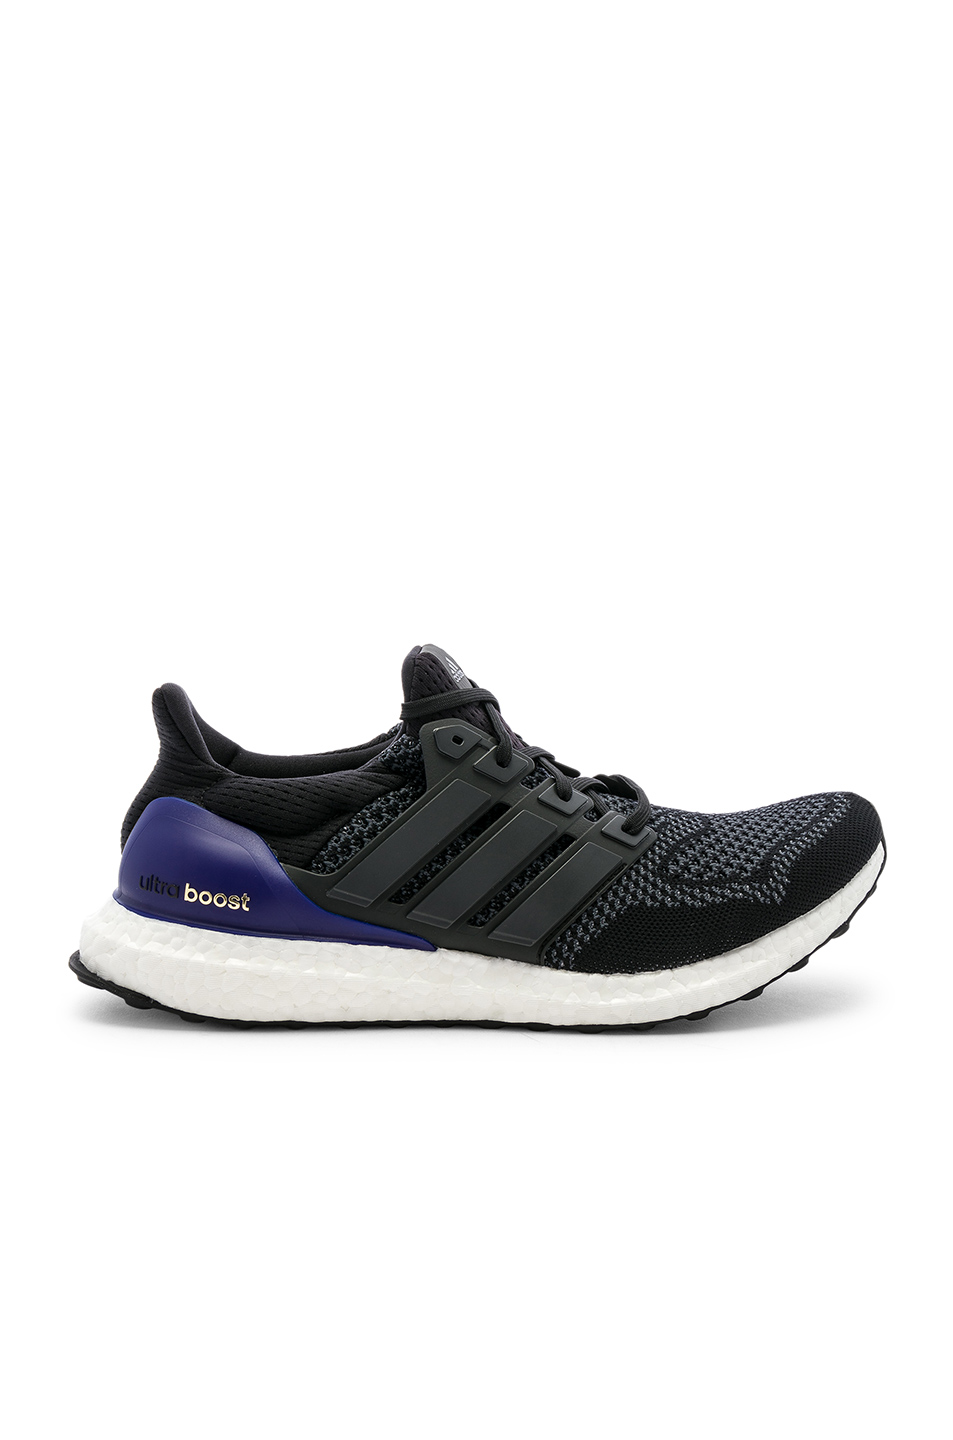 a137ff82a48 Buy Original adidas Originals Ultra Boost Sneaker at Indonesia ...